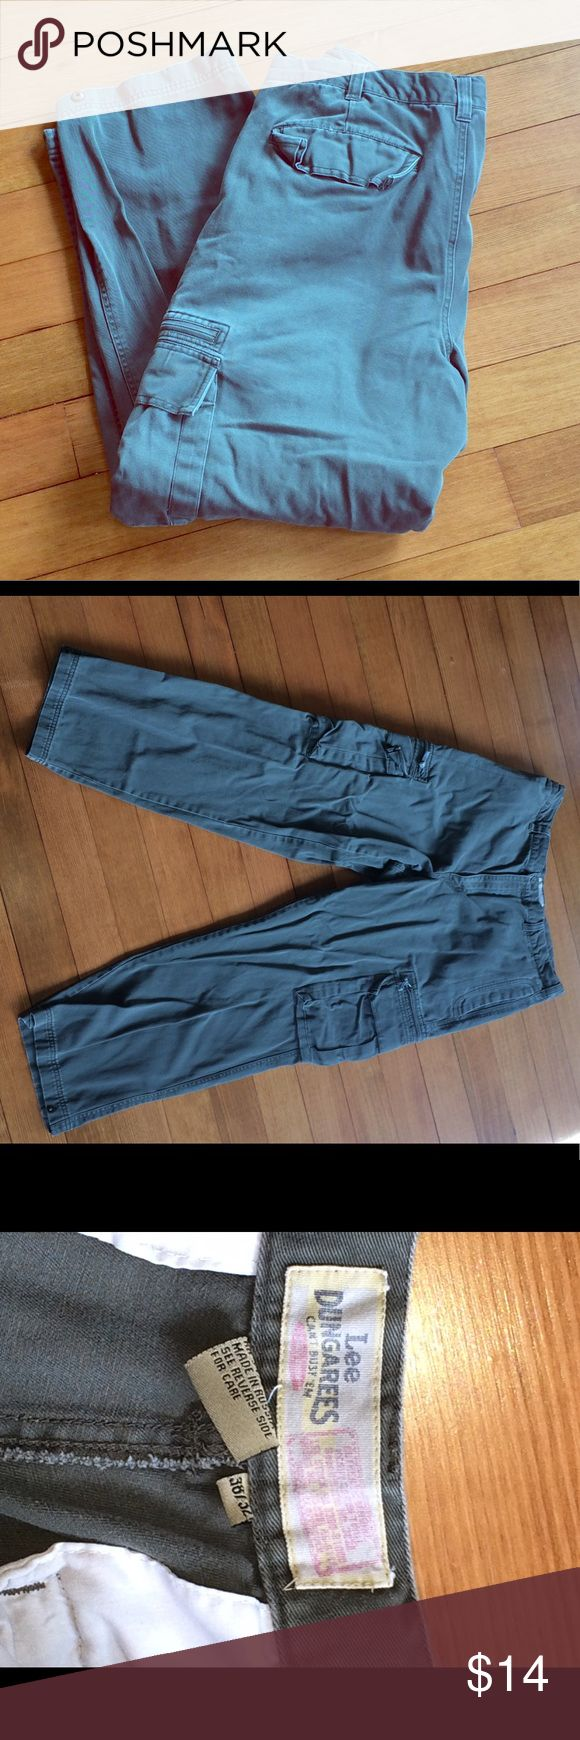 Men's cargo pants Olive green colored men's cargo pants by Lee Dungarees.  38 X 32.  100% cotton.  Machine wash & tumble dry.  Drawstring inside pants.  Two side cargo pockets in addition to two front & two back pockets. Lee Dungarees Pants Cargo